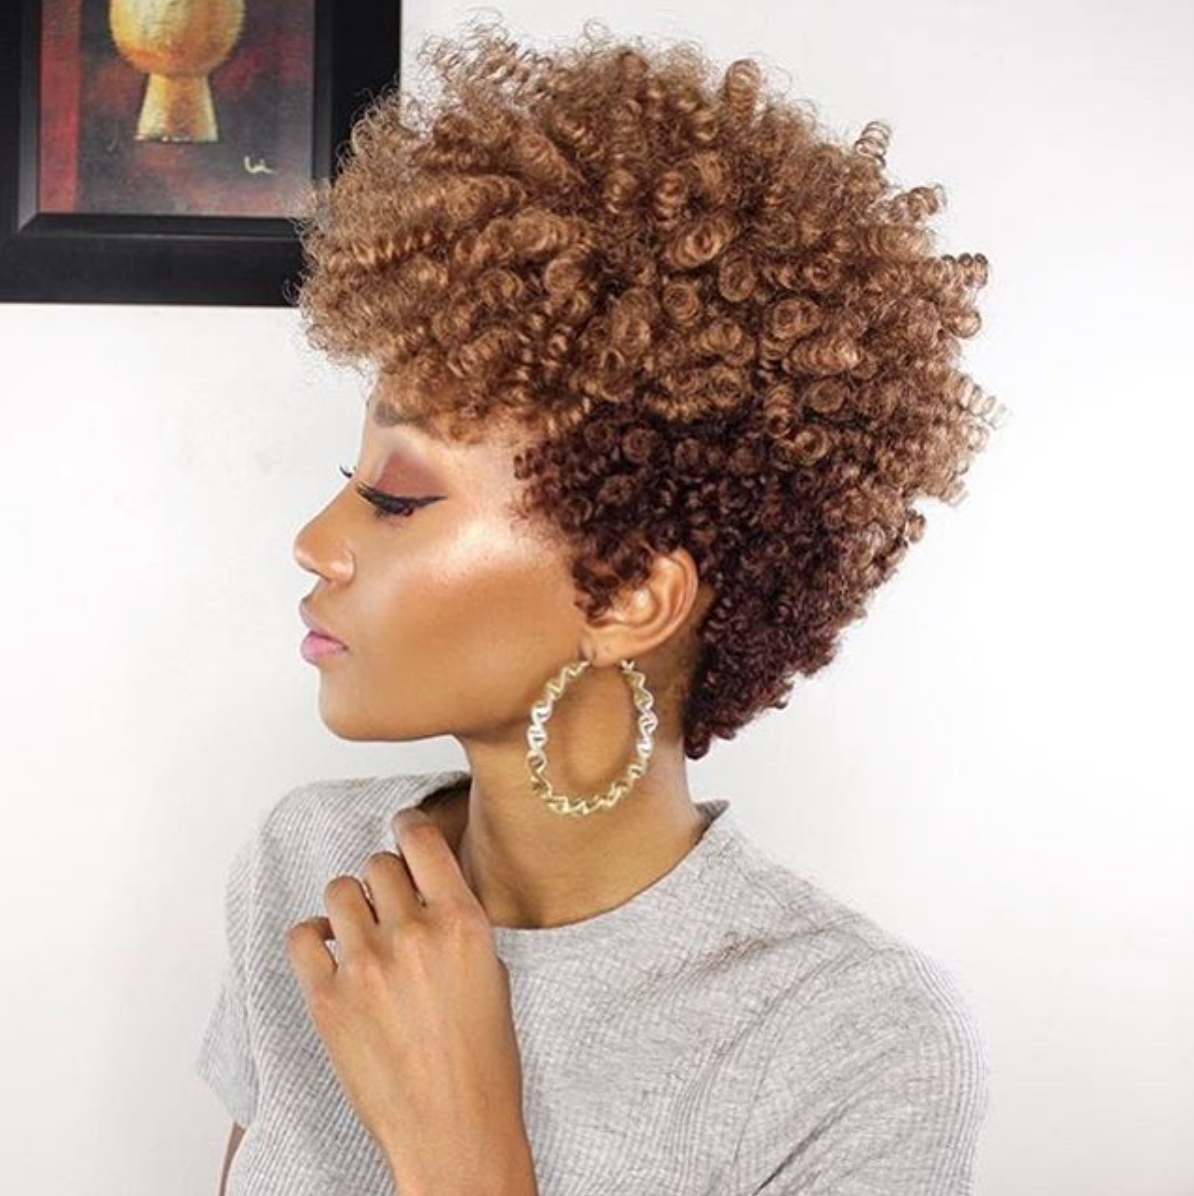 Coupe femme courte afro